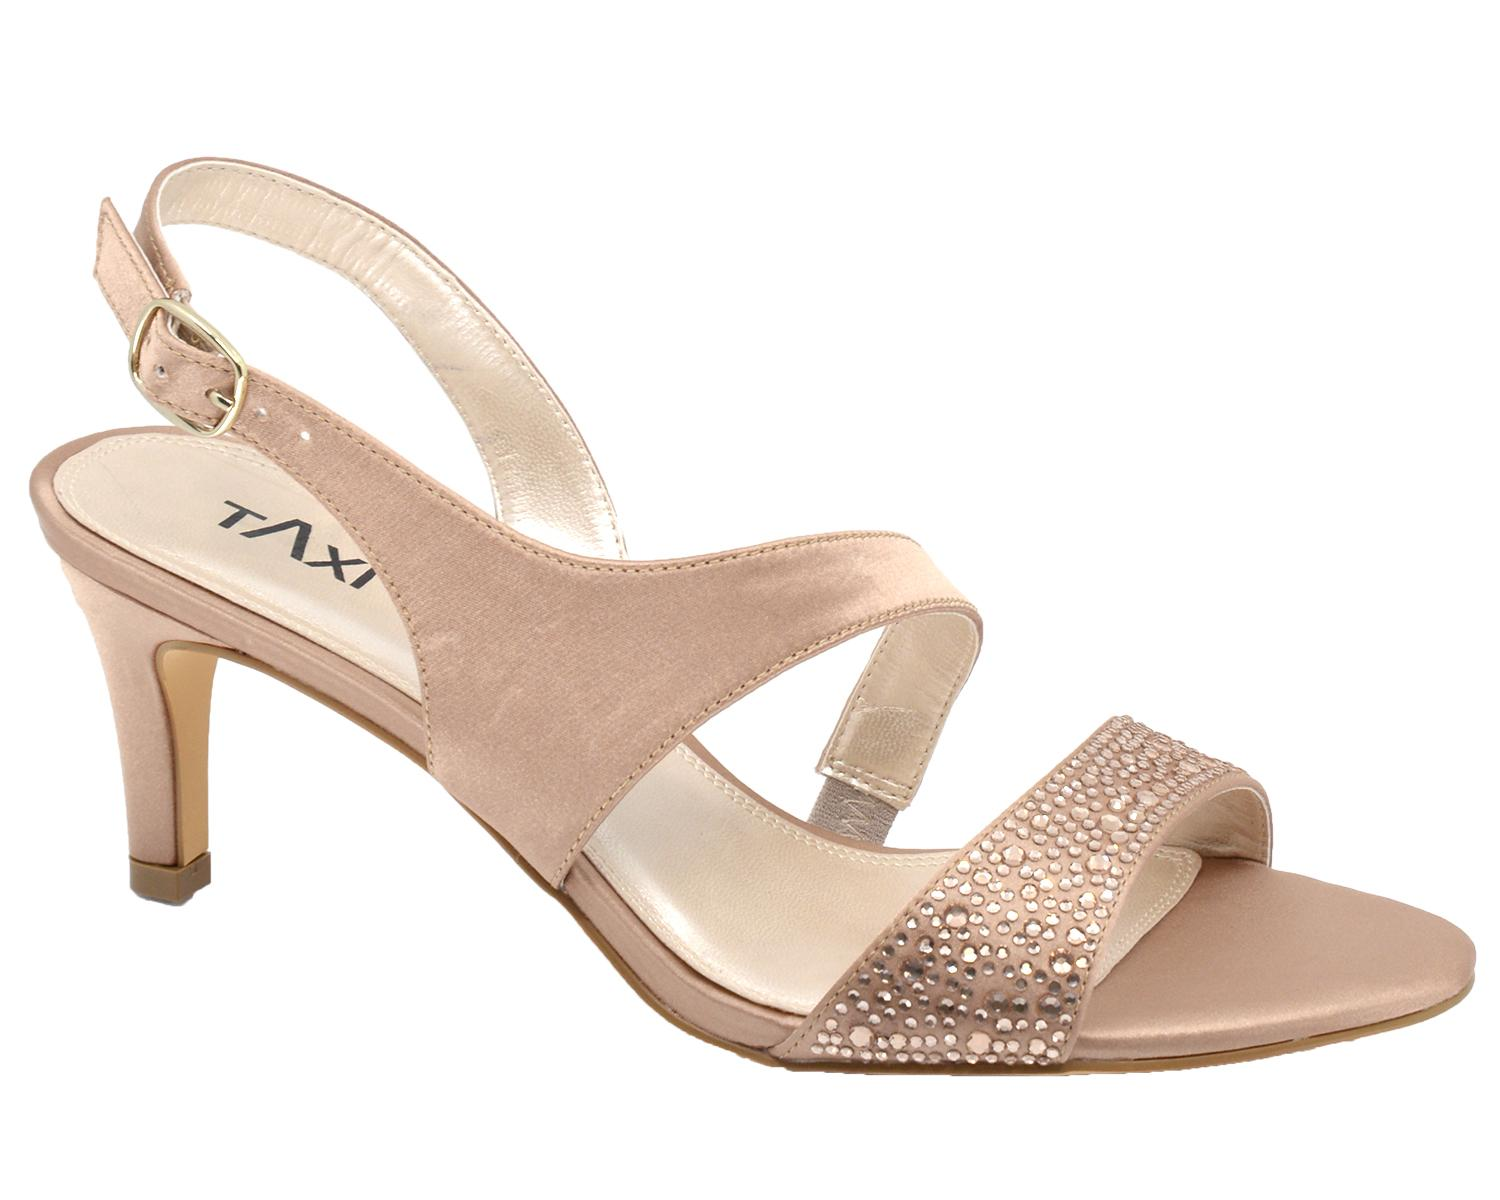 YVONNE-01 RUSTY PINK- SOLD OUT